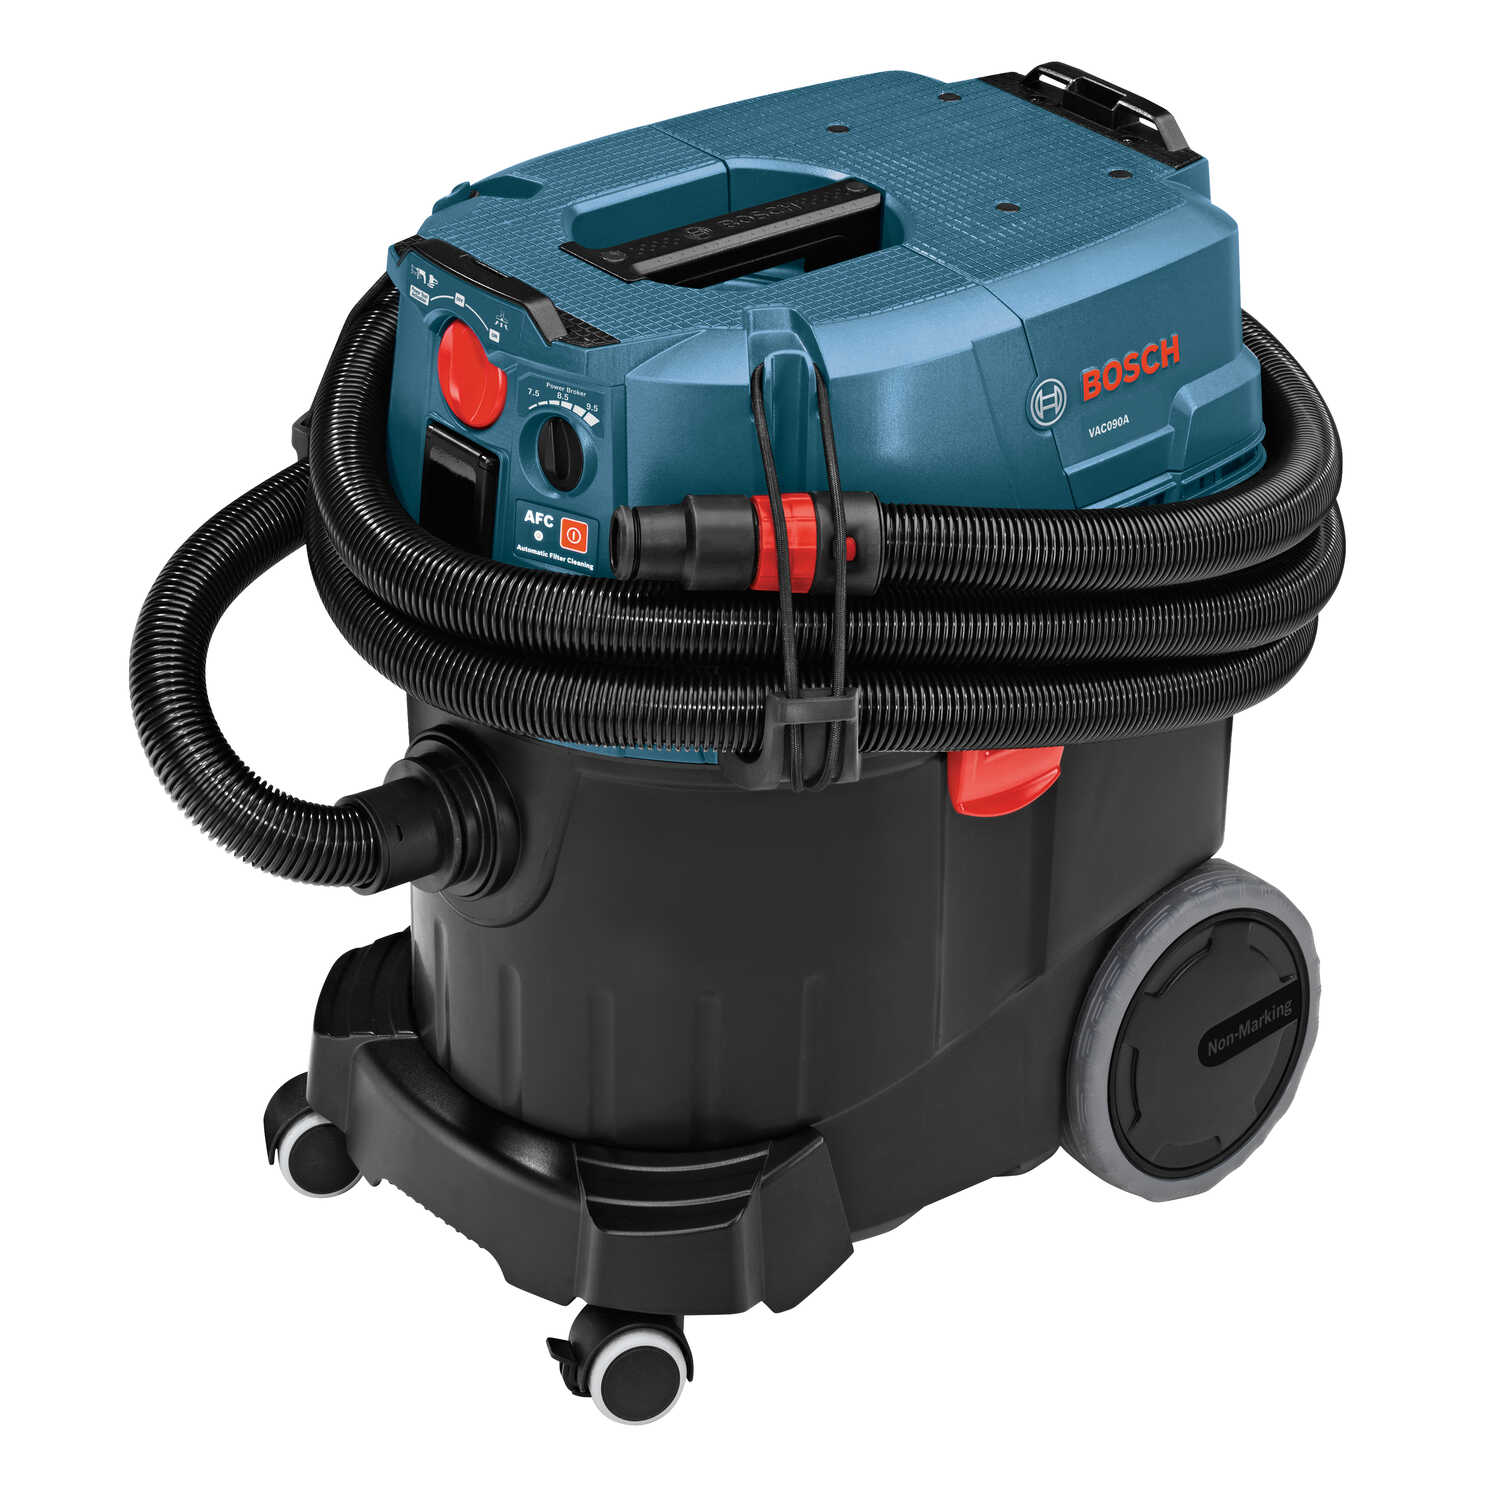 Bosch  9 gal. Corded  Dust Extractor with Auto Filter Clean  120 volt Teal/Red  28 lb. 1 pc.